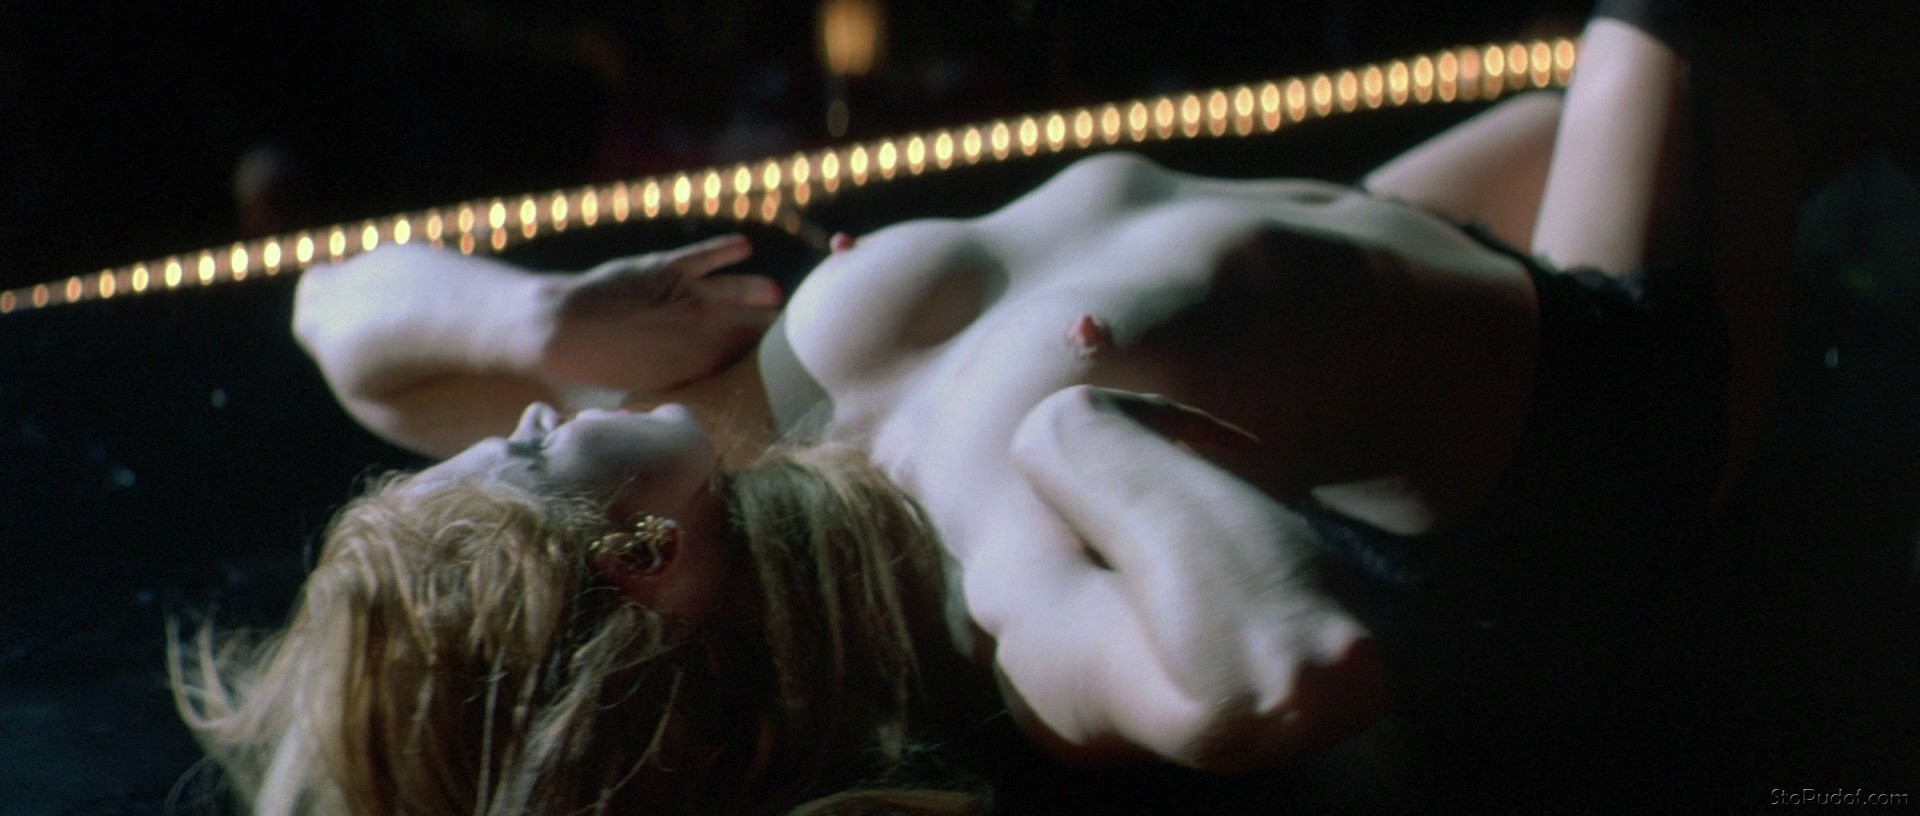 all Jessica Chastain nude photos - UkPhotoSafari